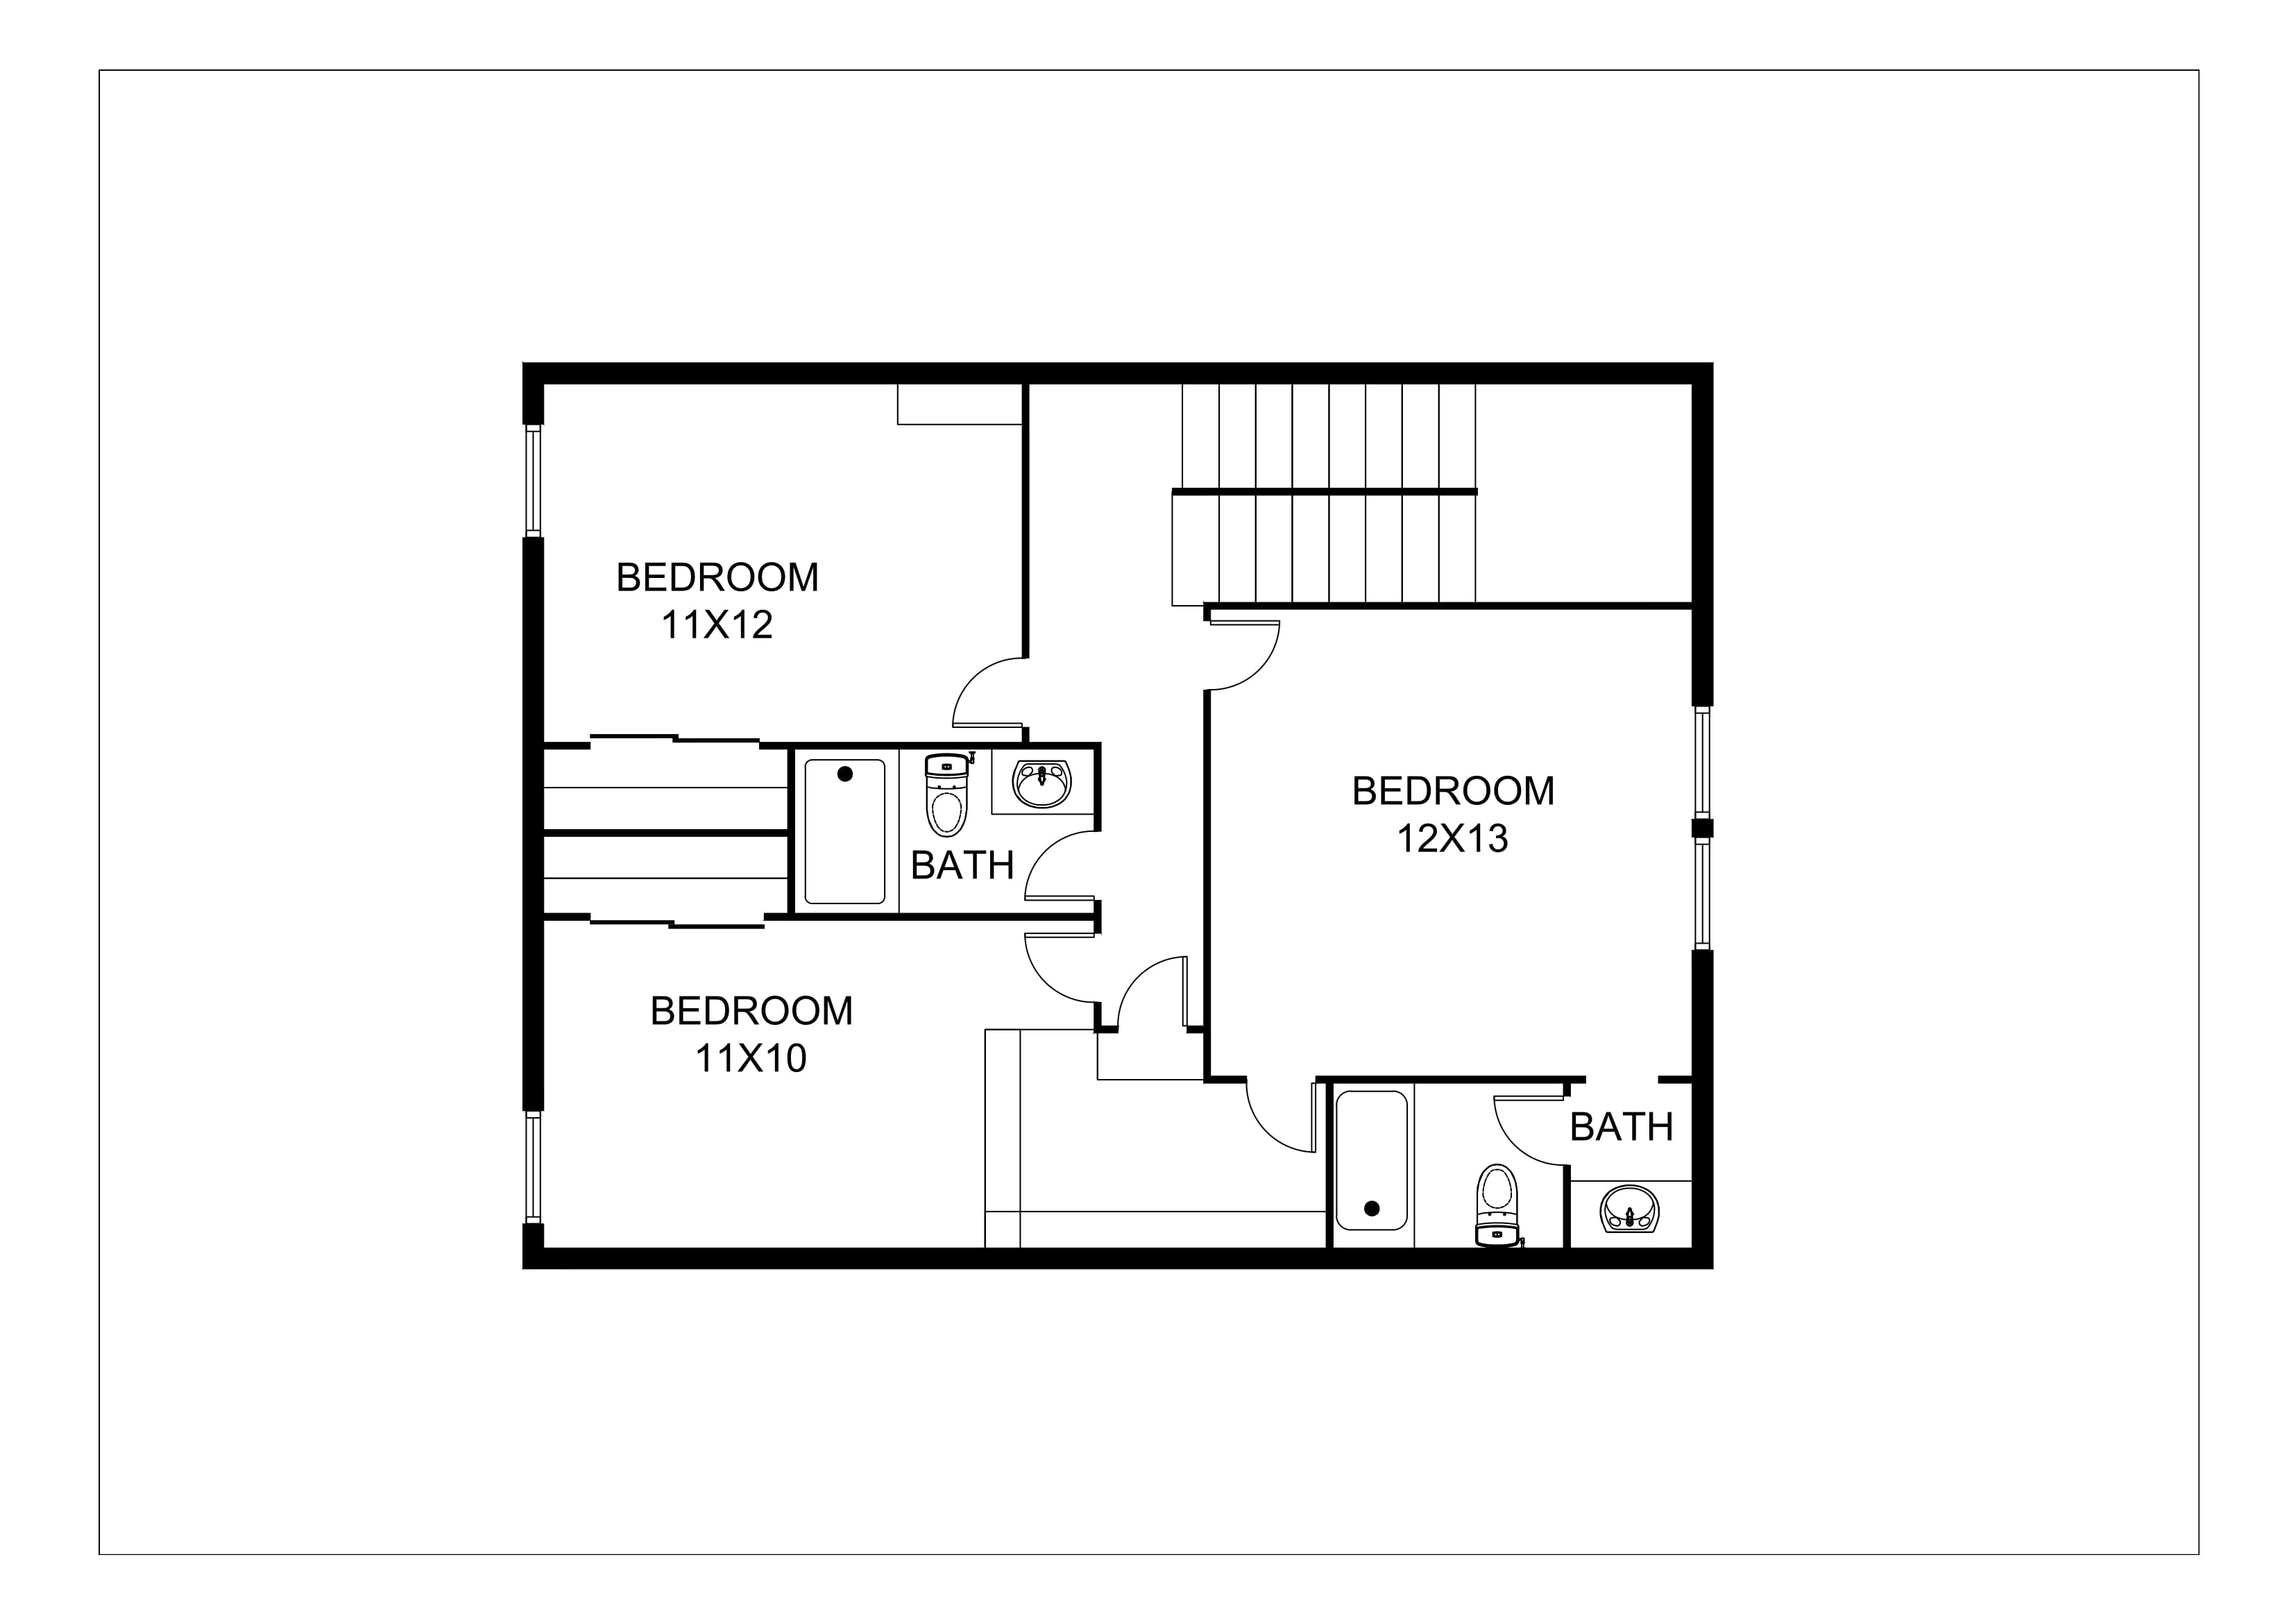 Real estate 2d floor plans design rendering samples for Floor plan com